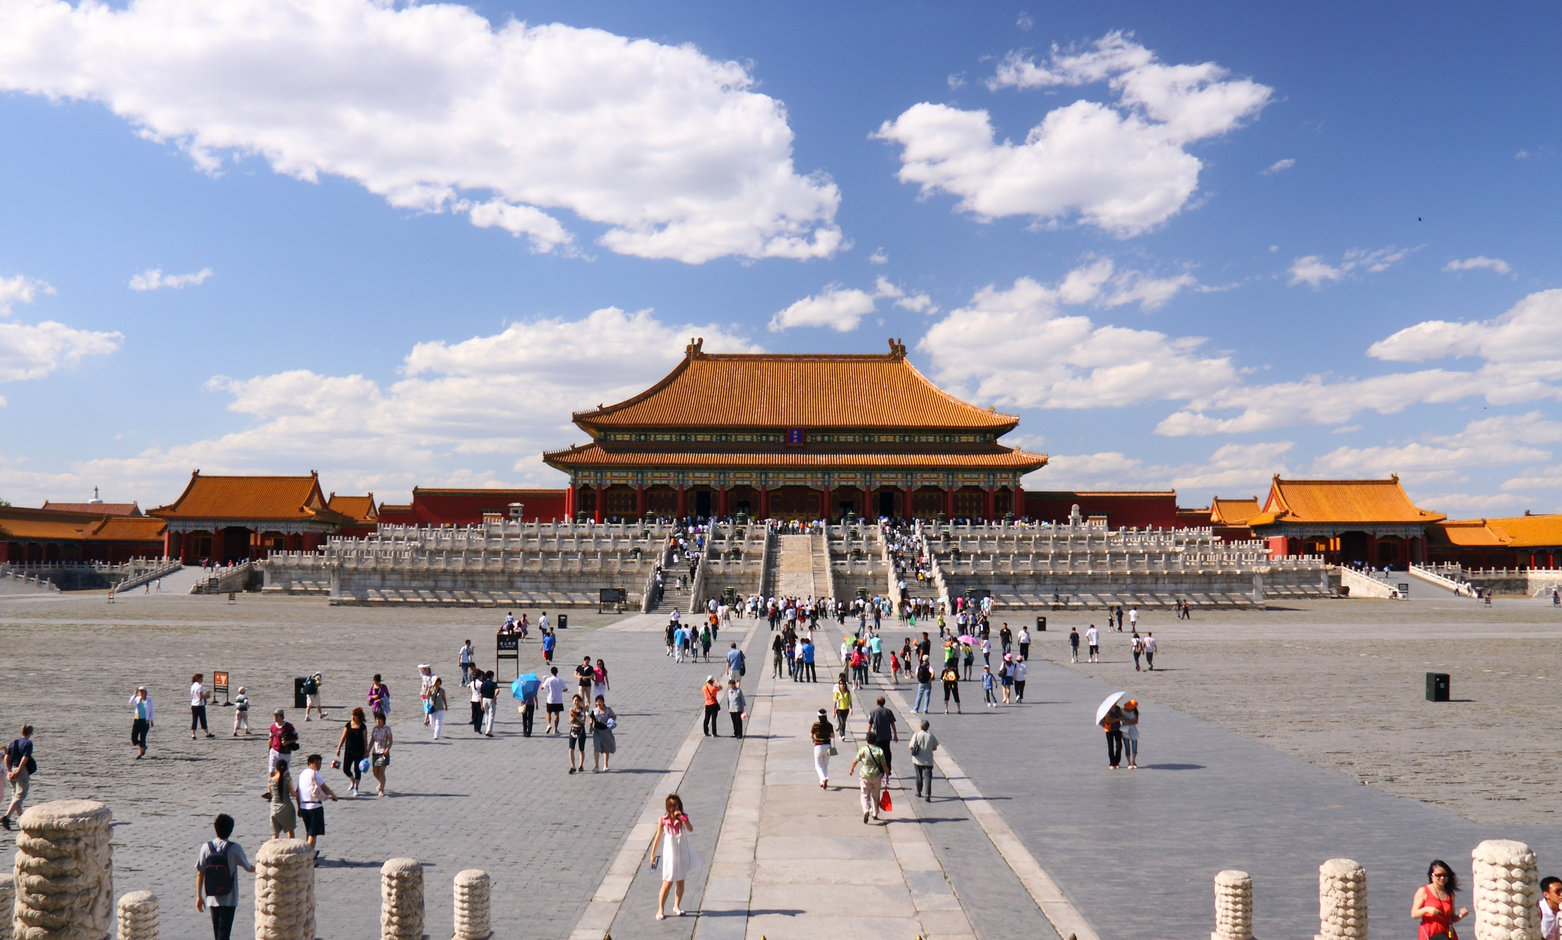 rsz ss forbidden city tiananmen square beijing china